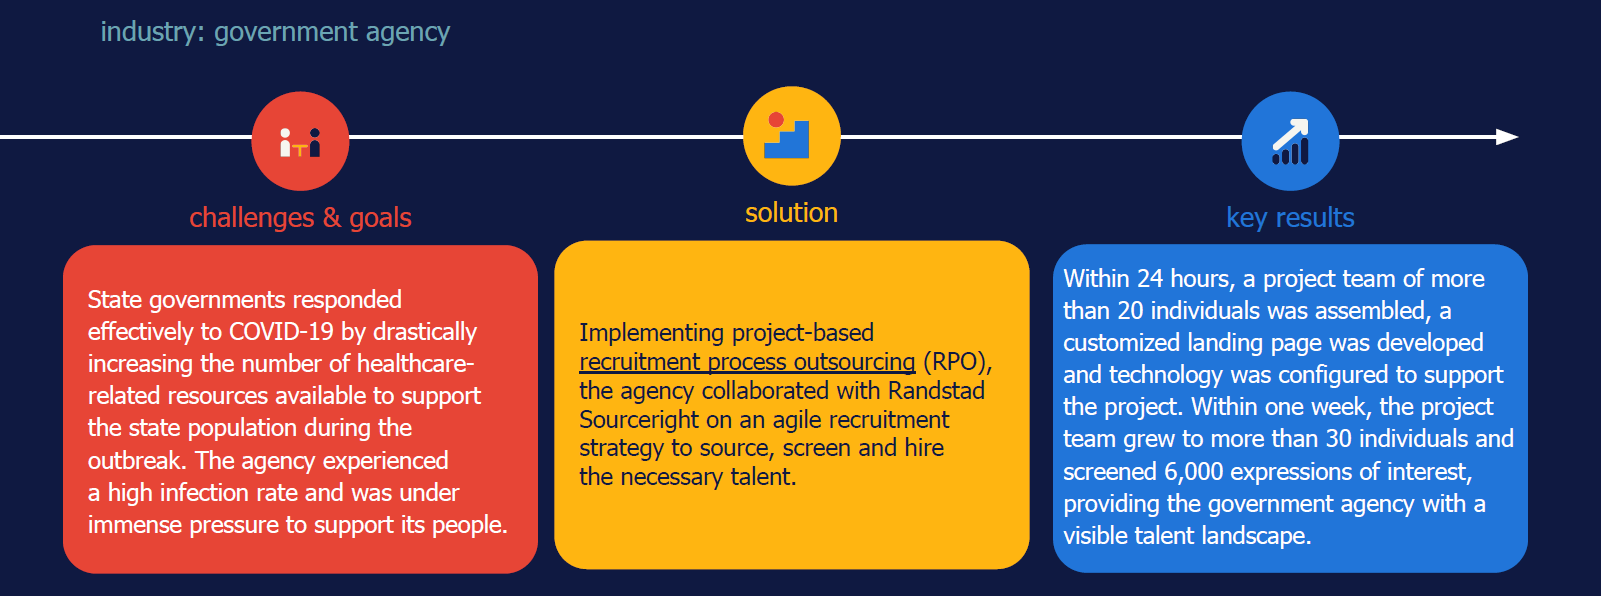 Randstad Sourceright project RPO case study COVID-19 government agency